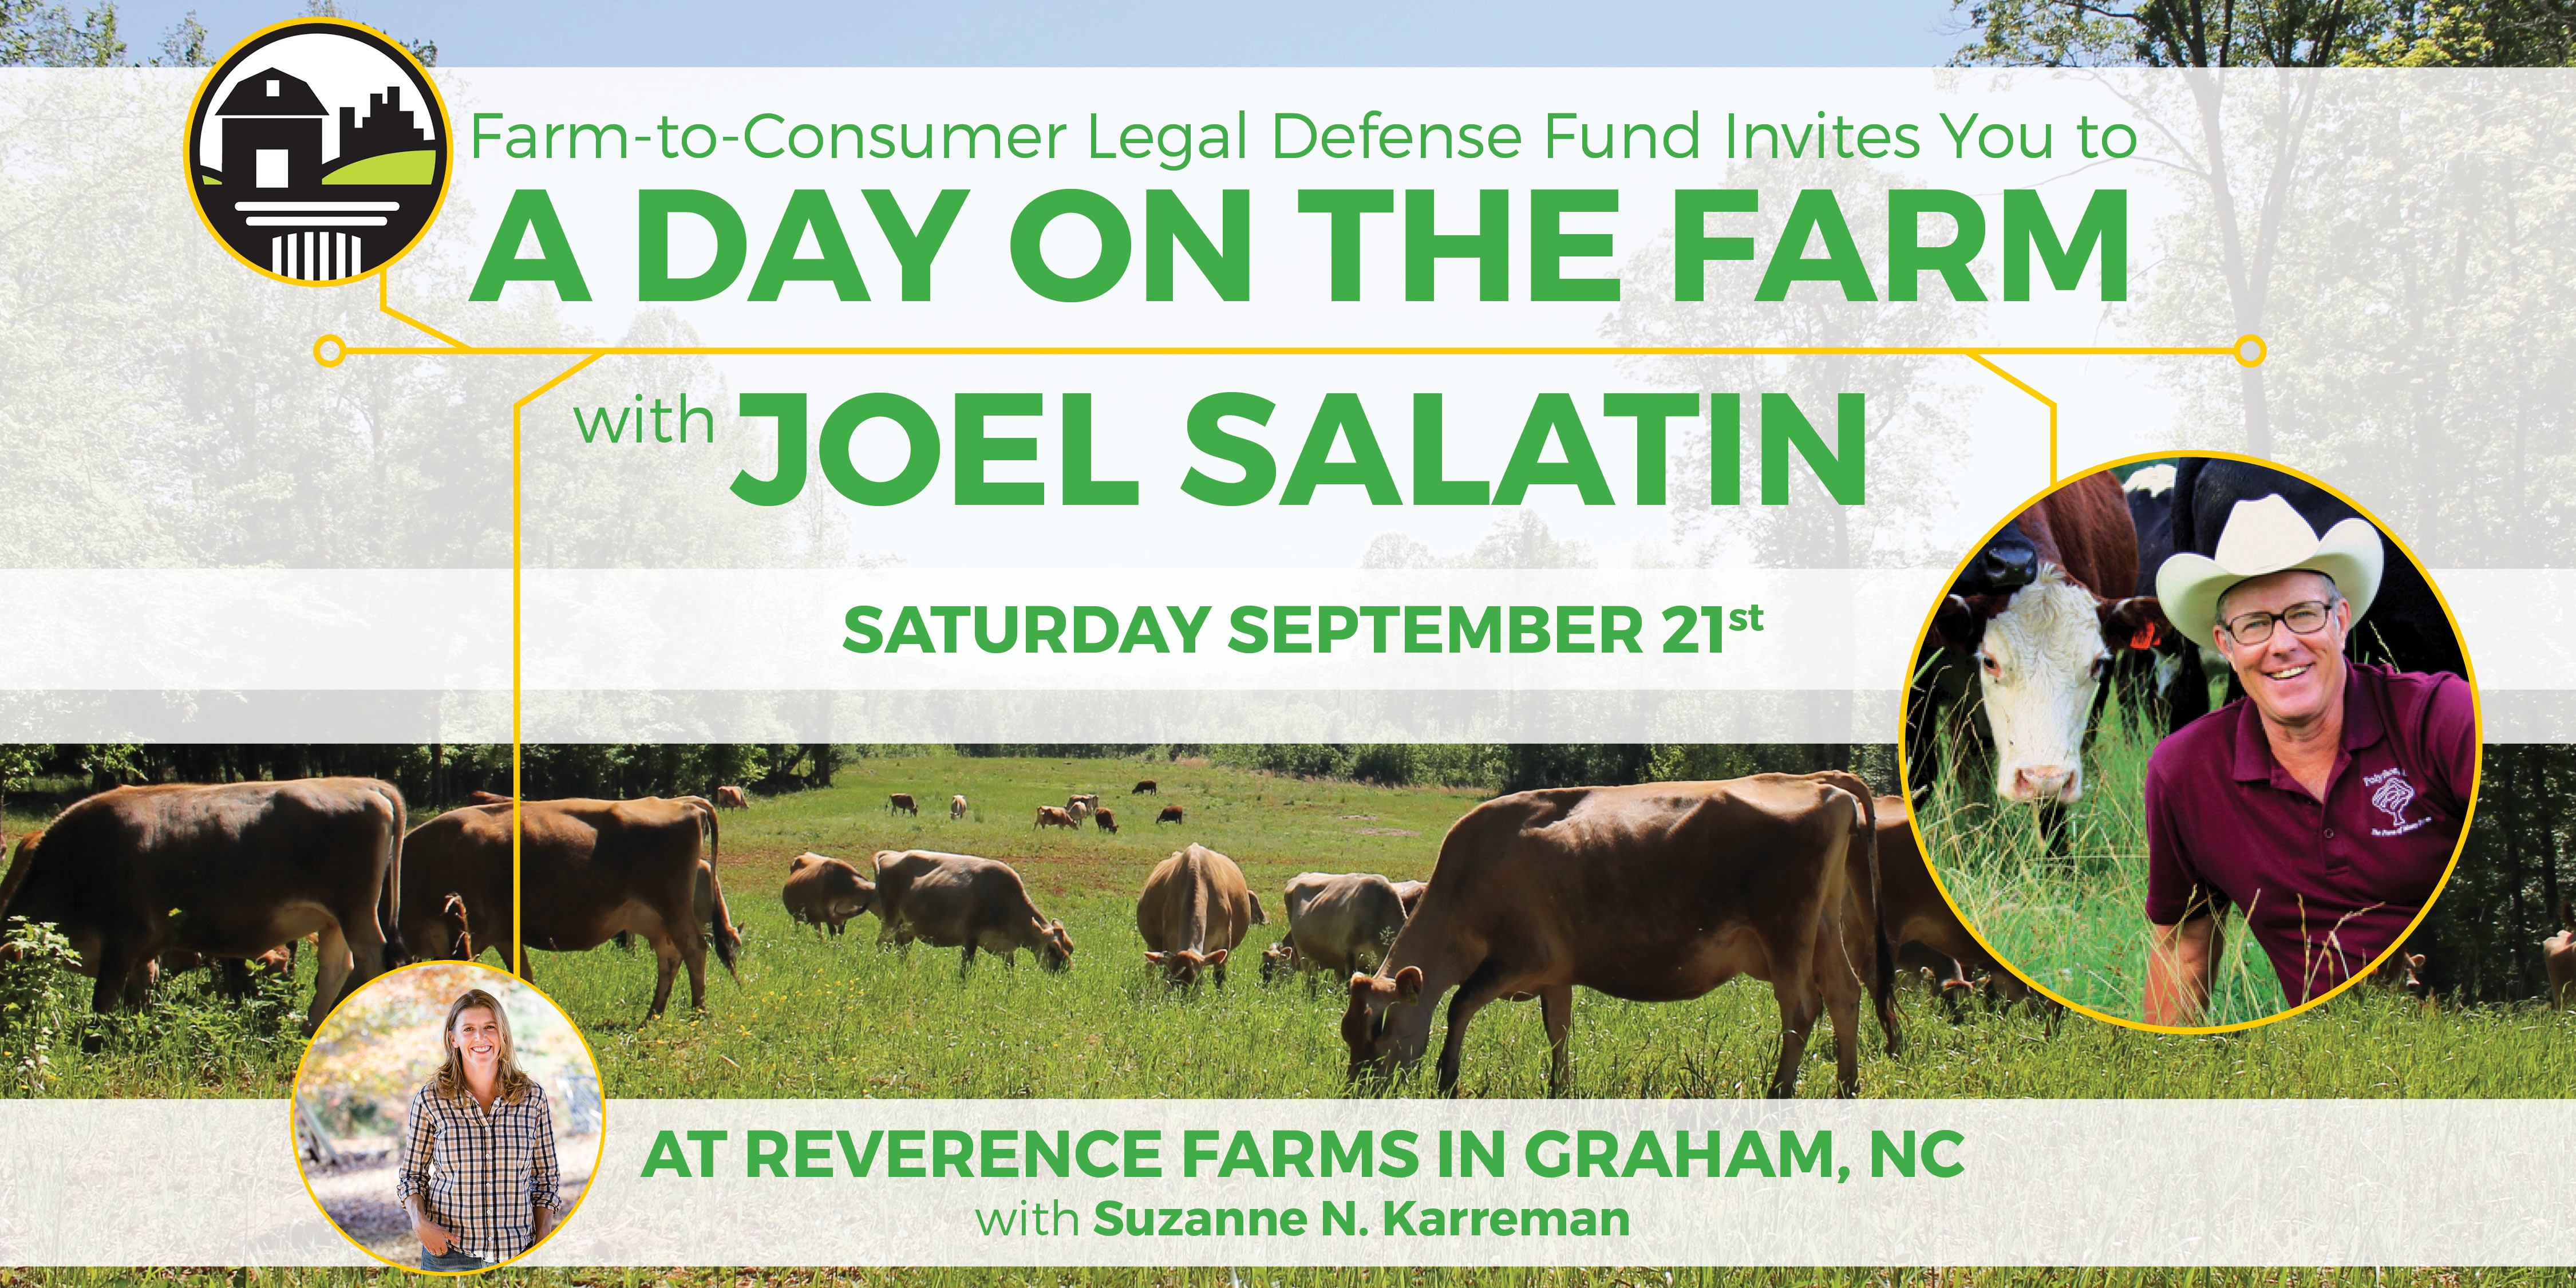 We Have Joel Salatin's Back